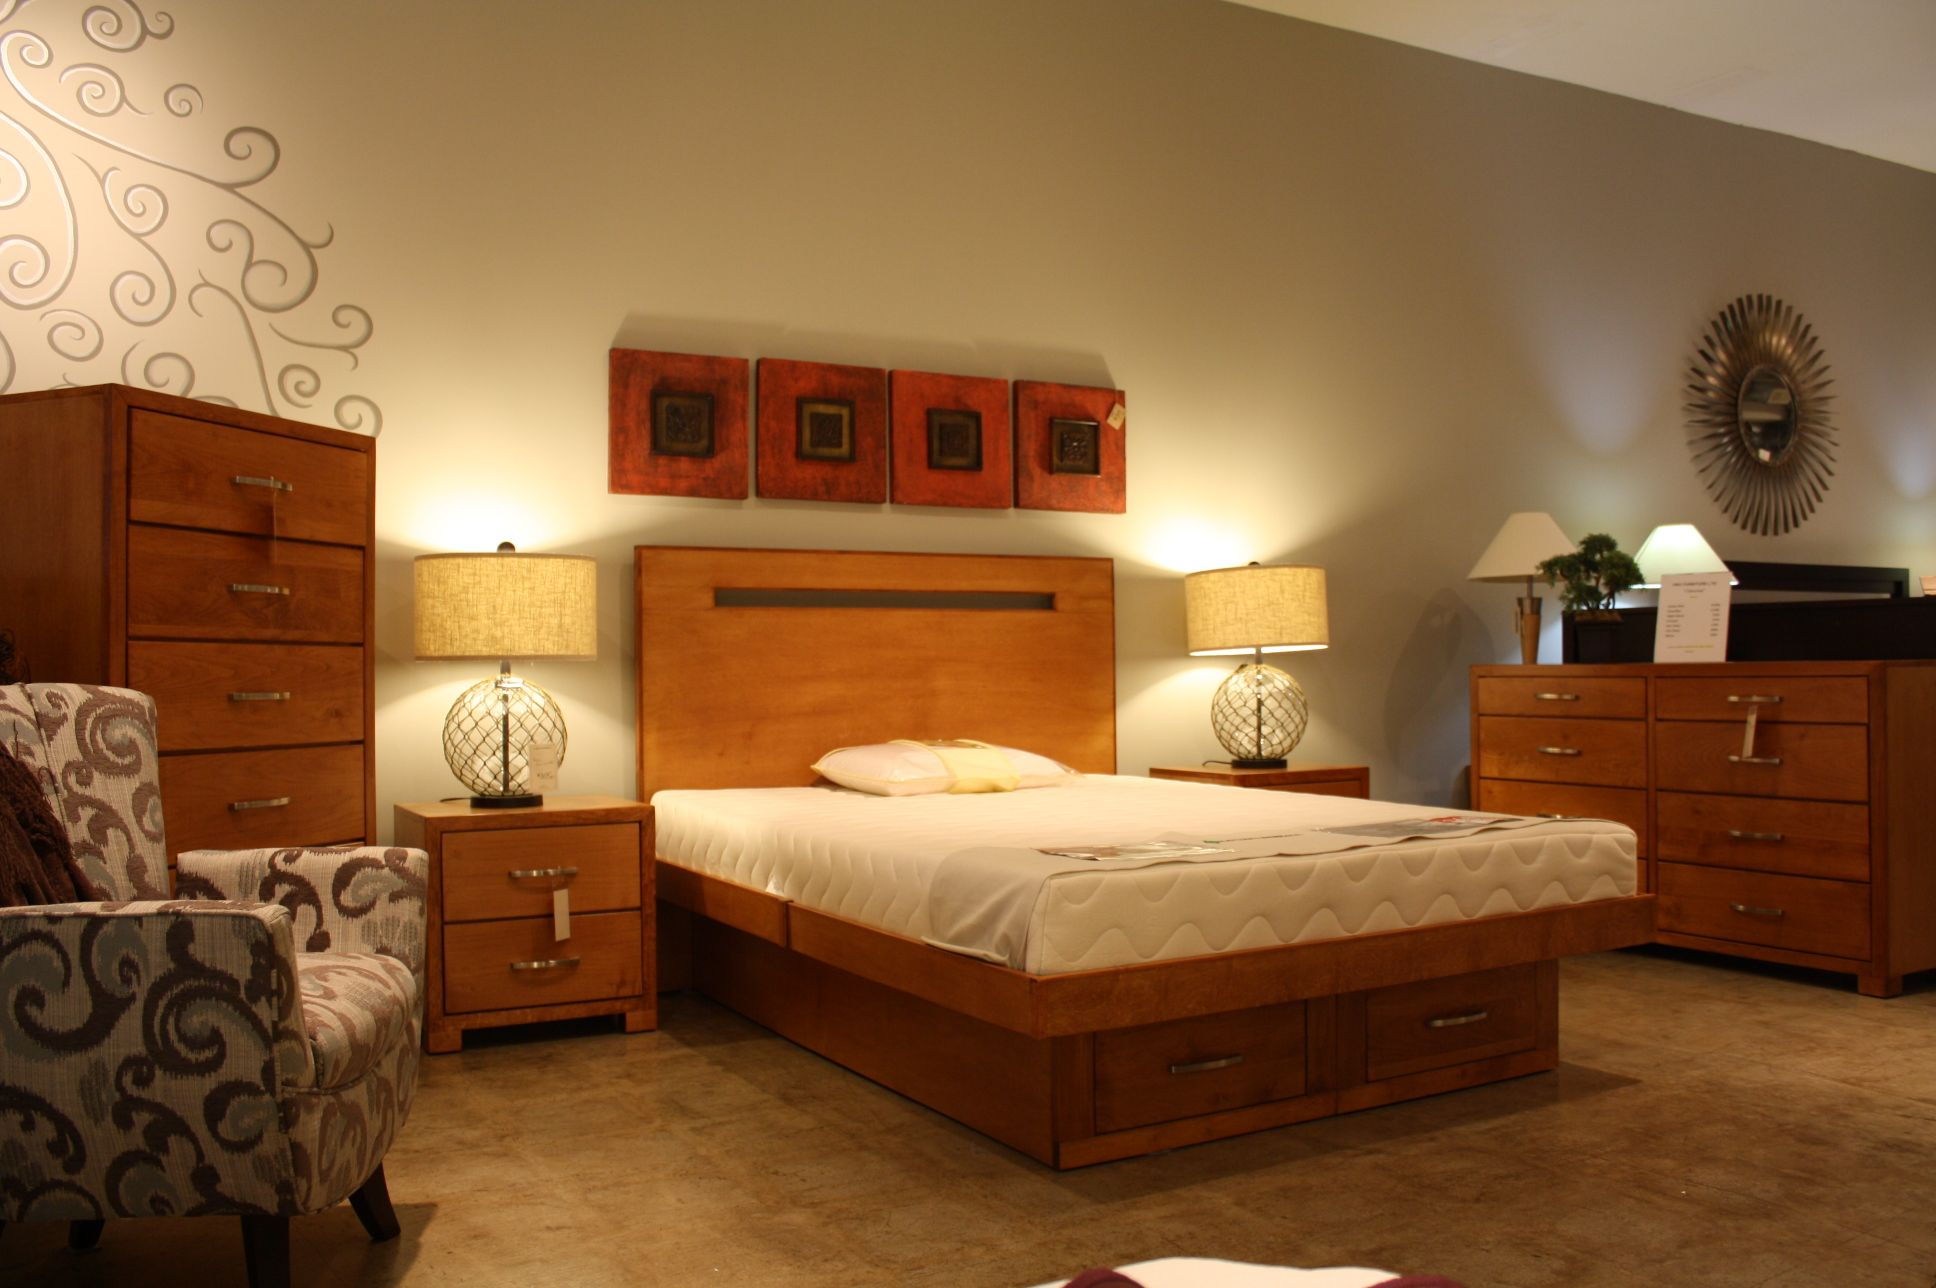 Real Maple Bedroom Set Queen Size Platform Bed With Storage Choice Of Stains And Handles